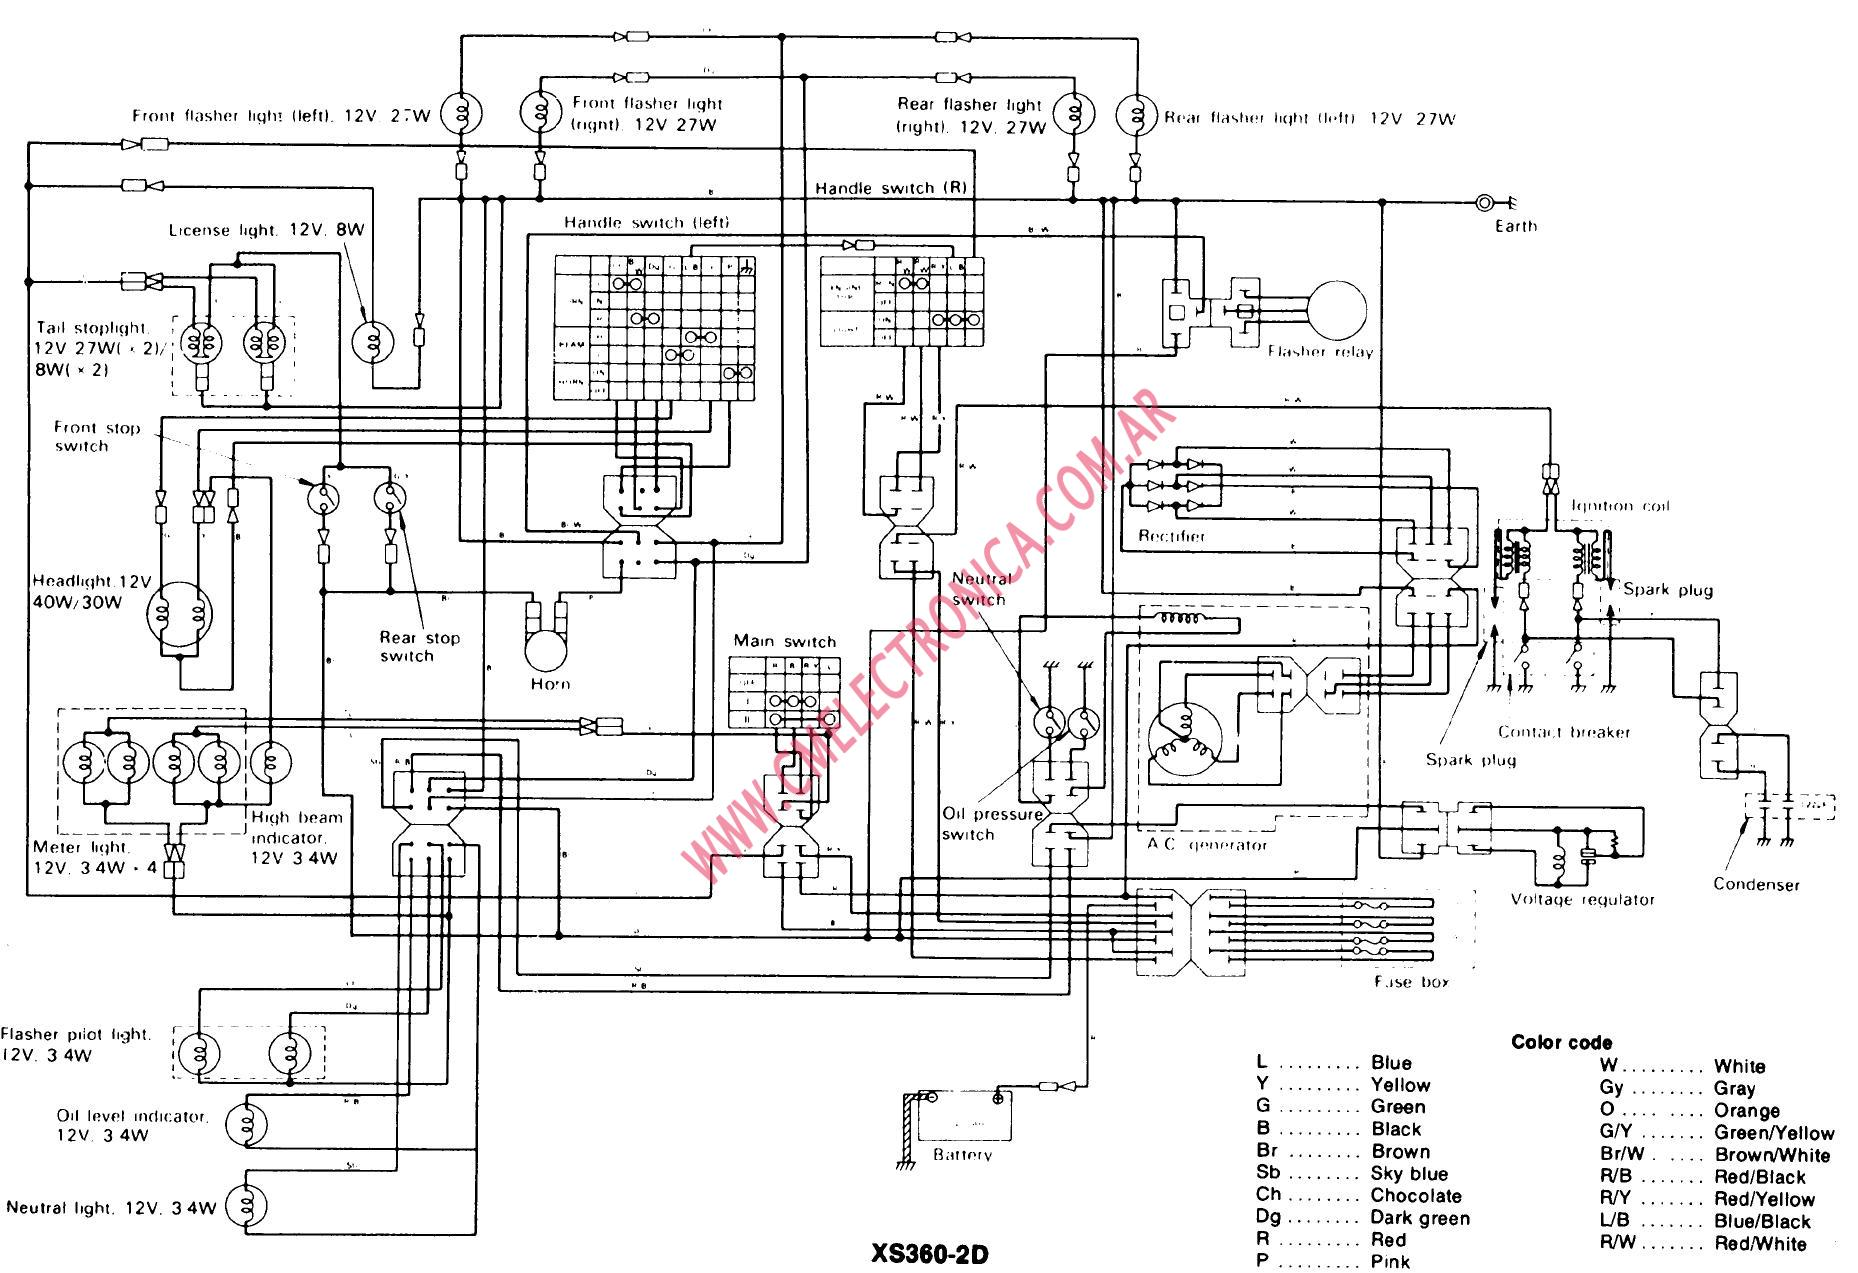 yamaha 650 wiring diagram  yamaha  free engine image for user manual download